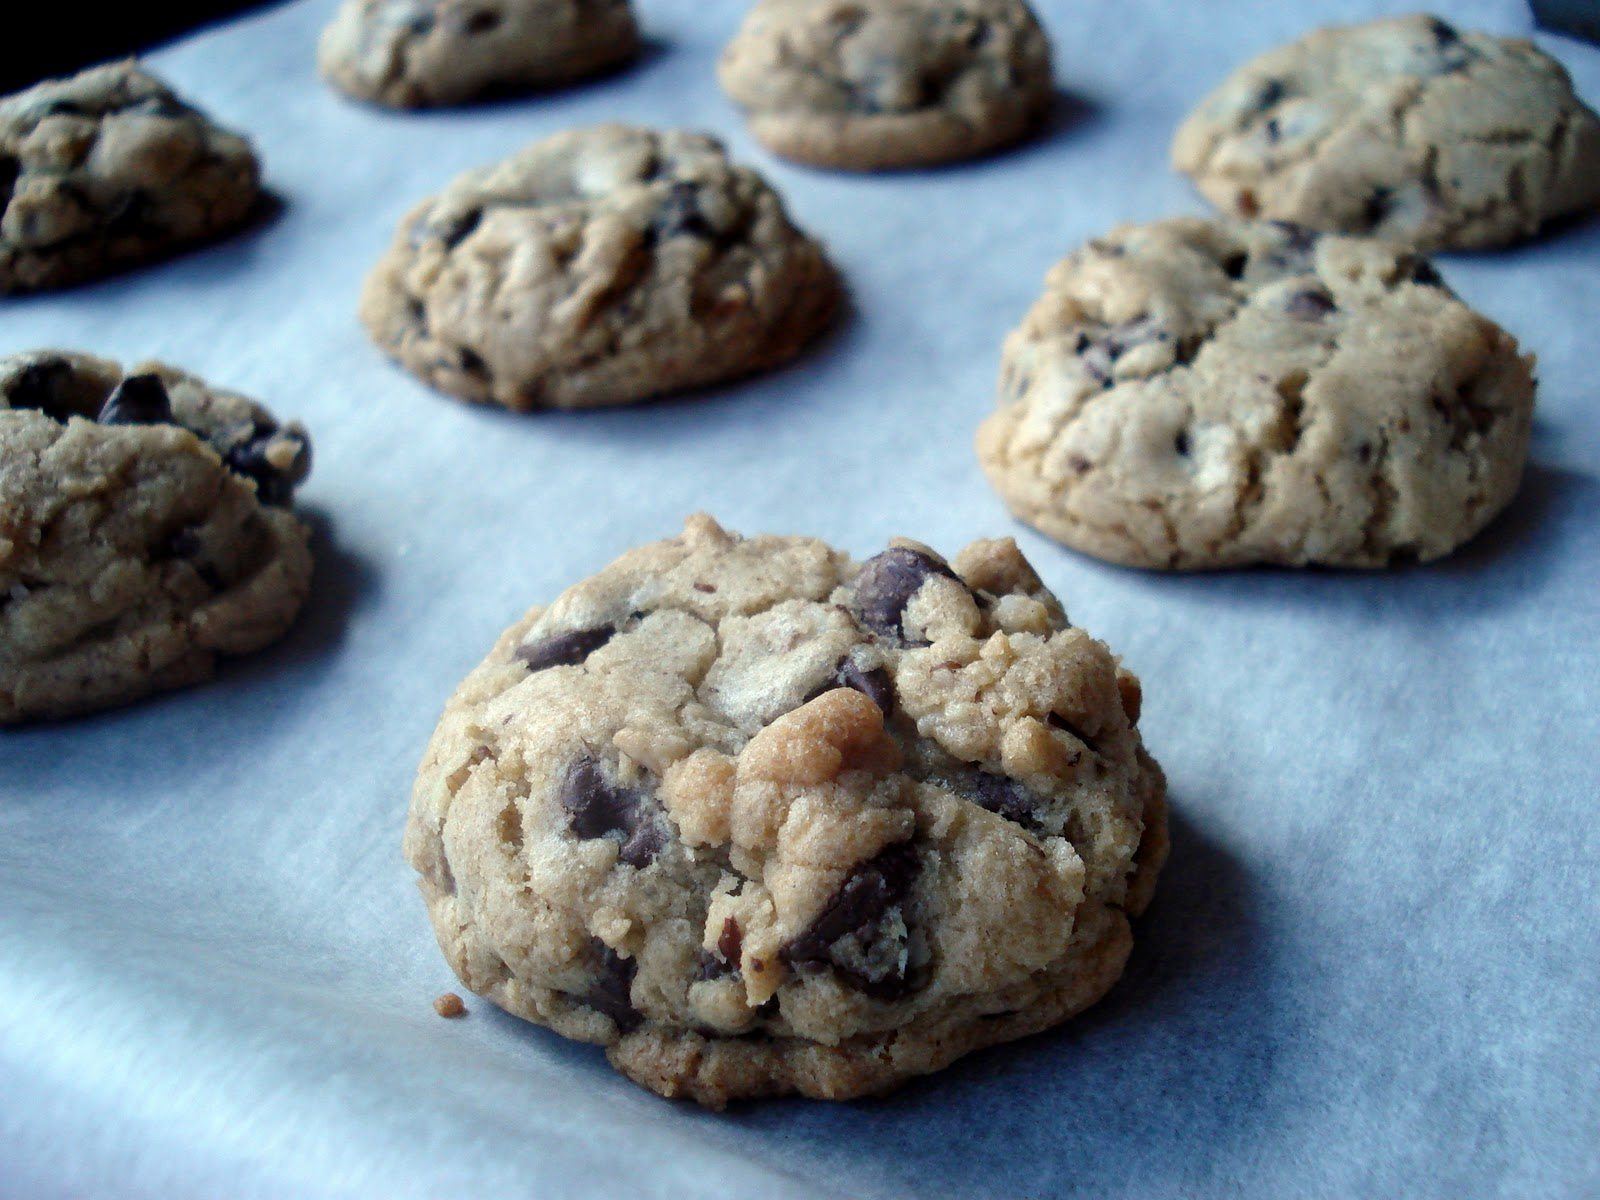 Bakestravaganza: Browned Butter Chocolate Chip Cookies